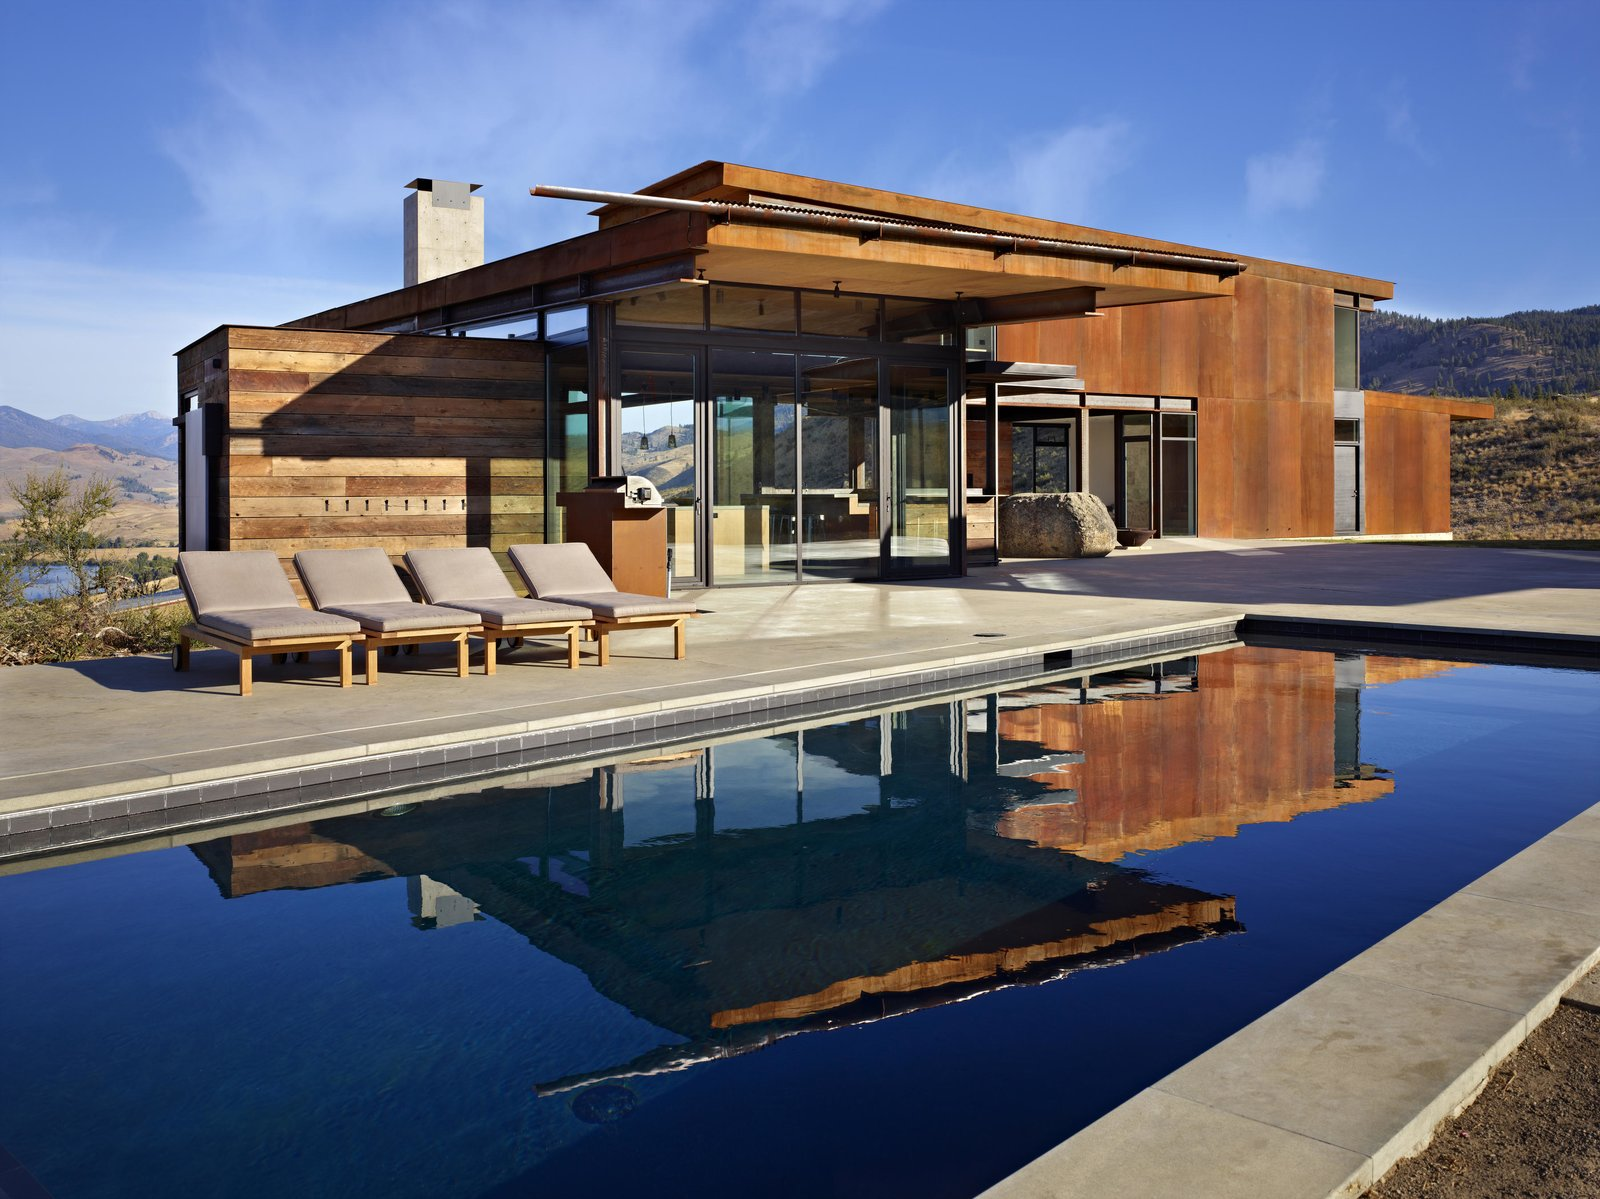 In the summer months, the pool provides a welcome respite from the heat. Tagged: Outdoor, Large Patio, Porch, Deck, Large Pool, Concrete Patio, Porch, Deck, Concrete Pool, and Desert. A Steel-and-Glass Compound Is One Family's Launchpad For Adventure - Photo 7 of 11